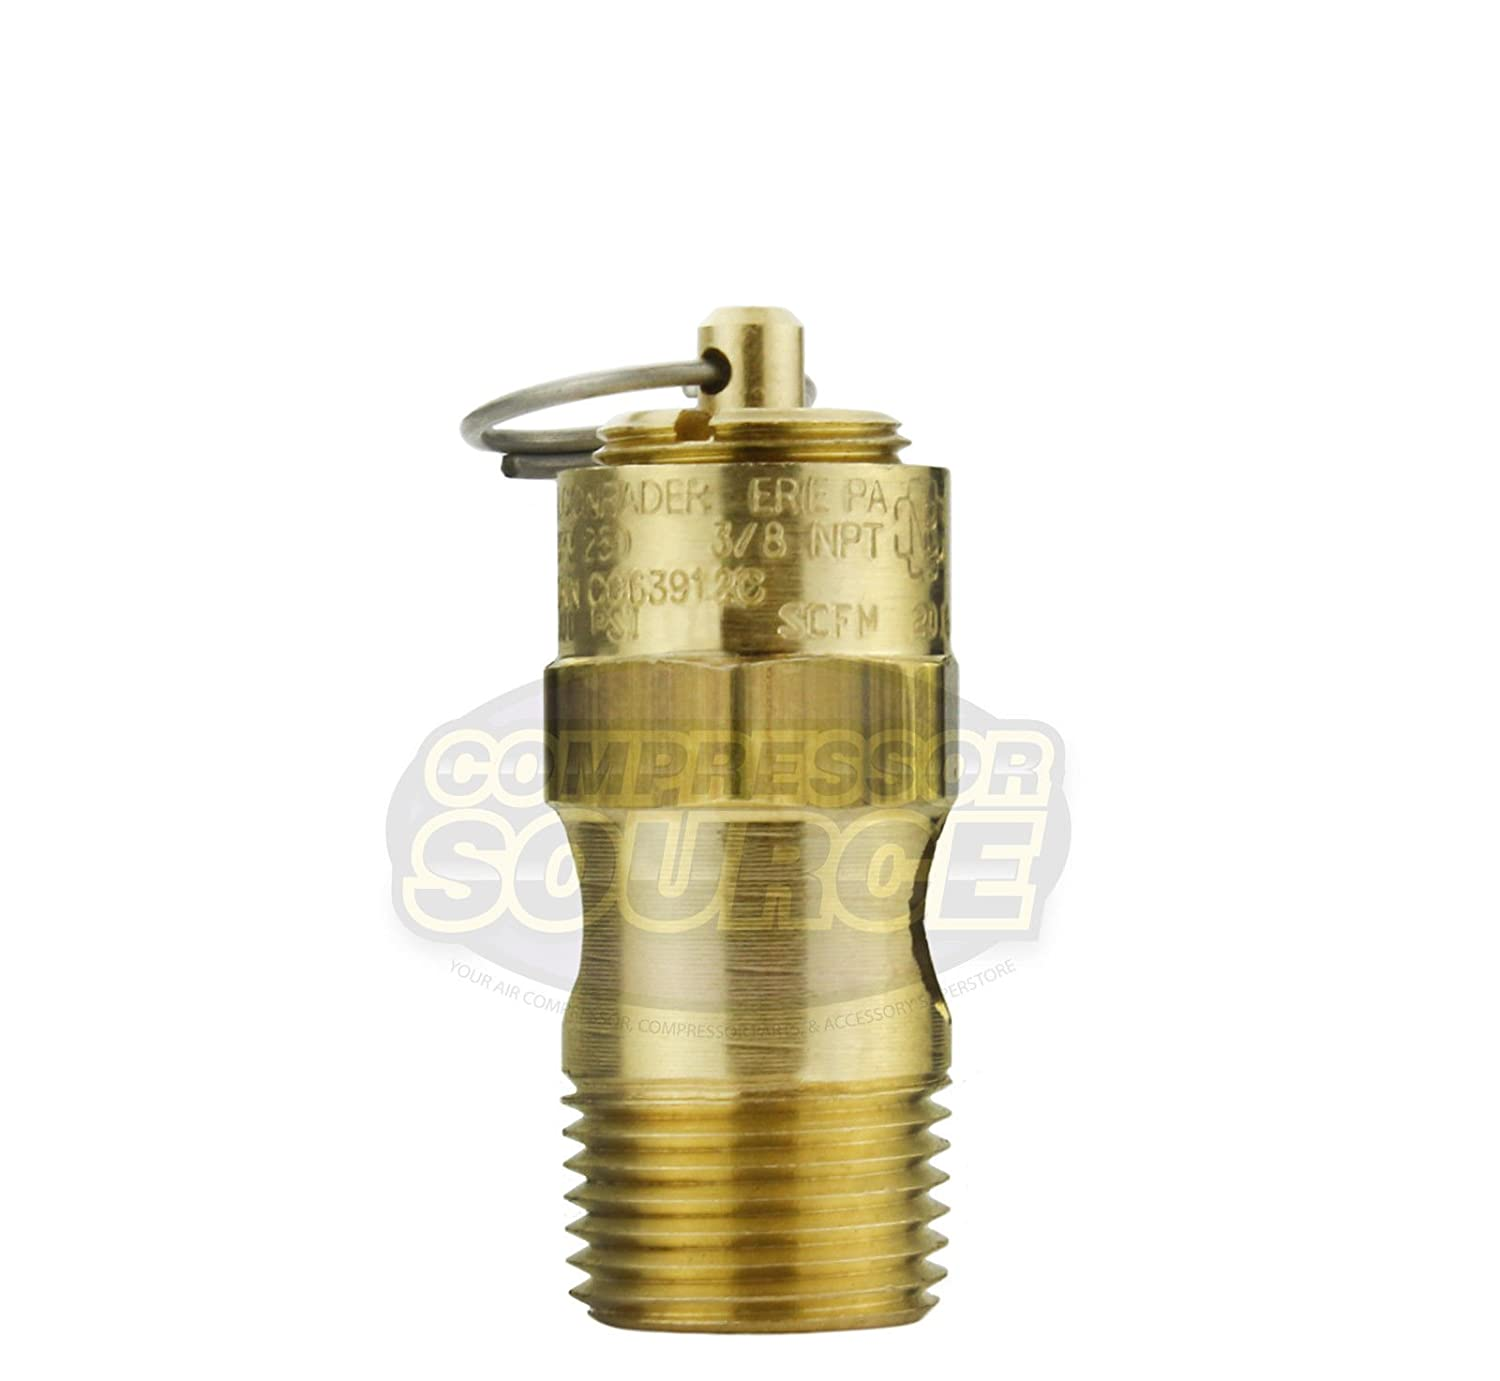 125 PSI 3//8 Male NPT Air Compressor Safety Relief Pop Off Valve Solid Brass New